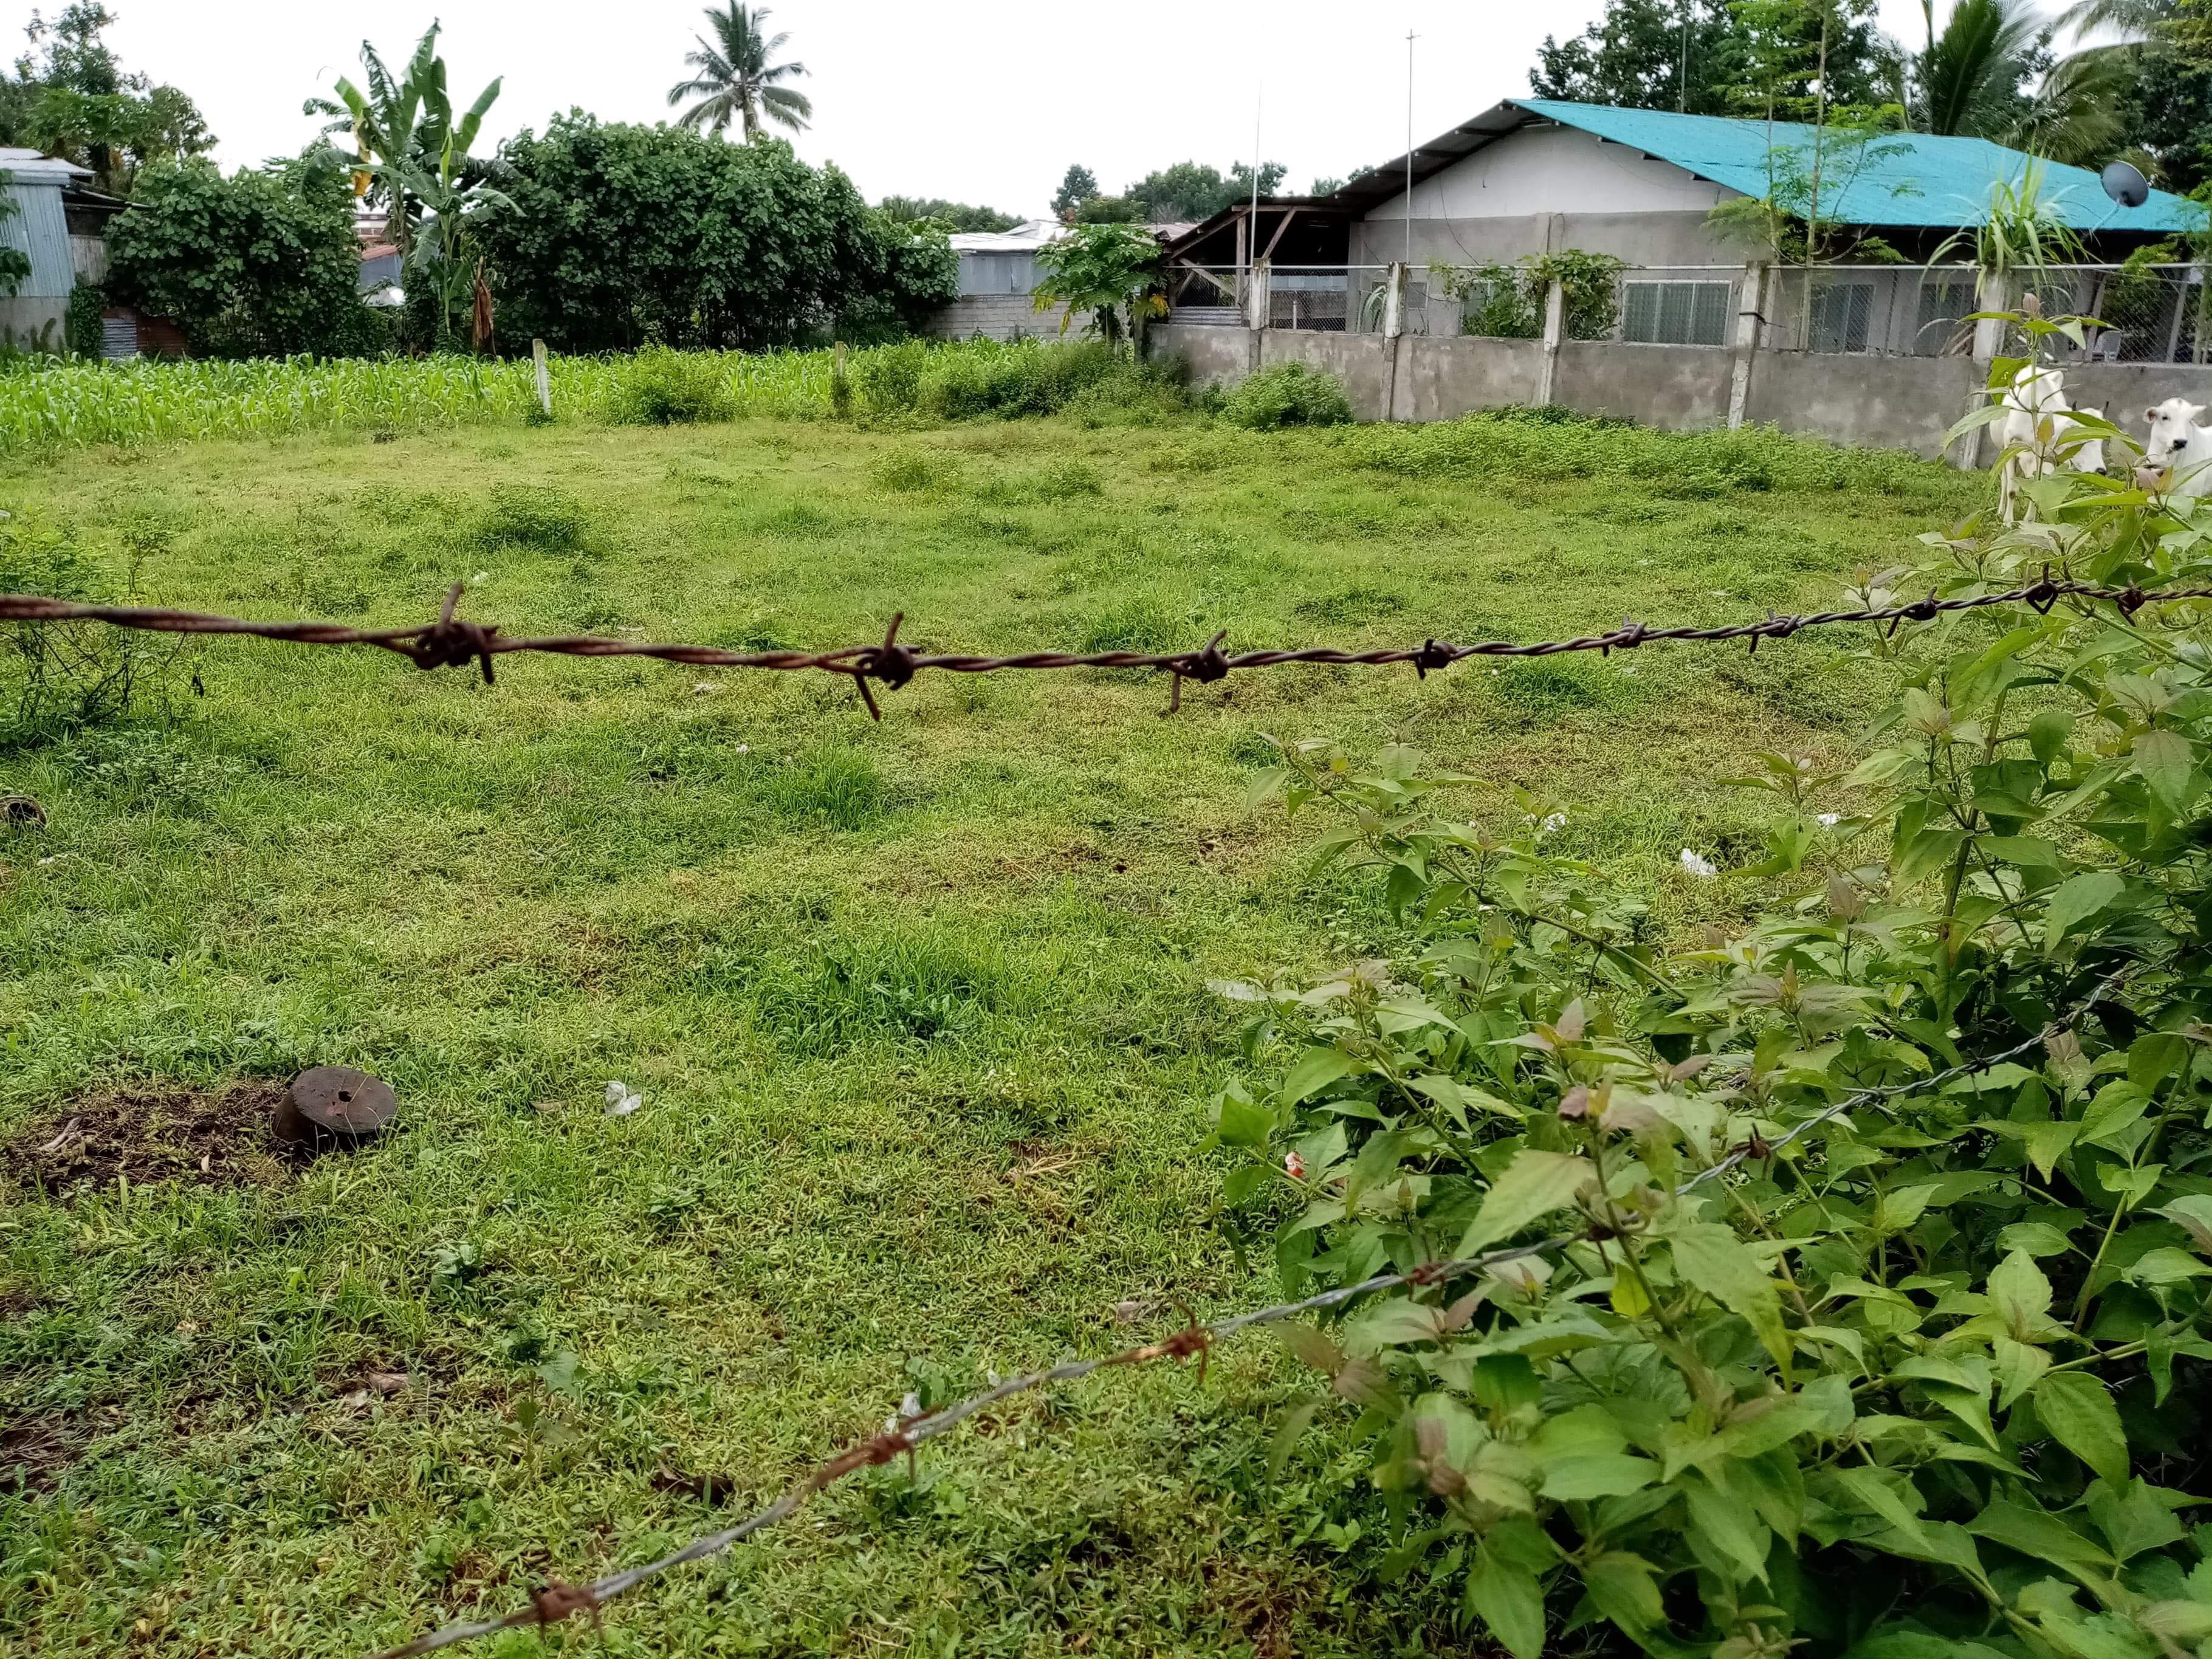 agricultural that could be converted as residential lot,within booming location of polomolok.